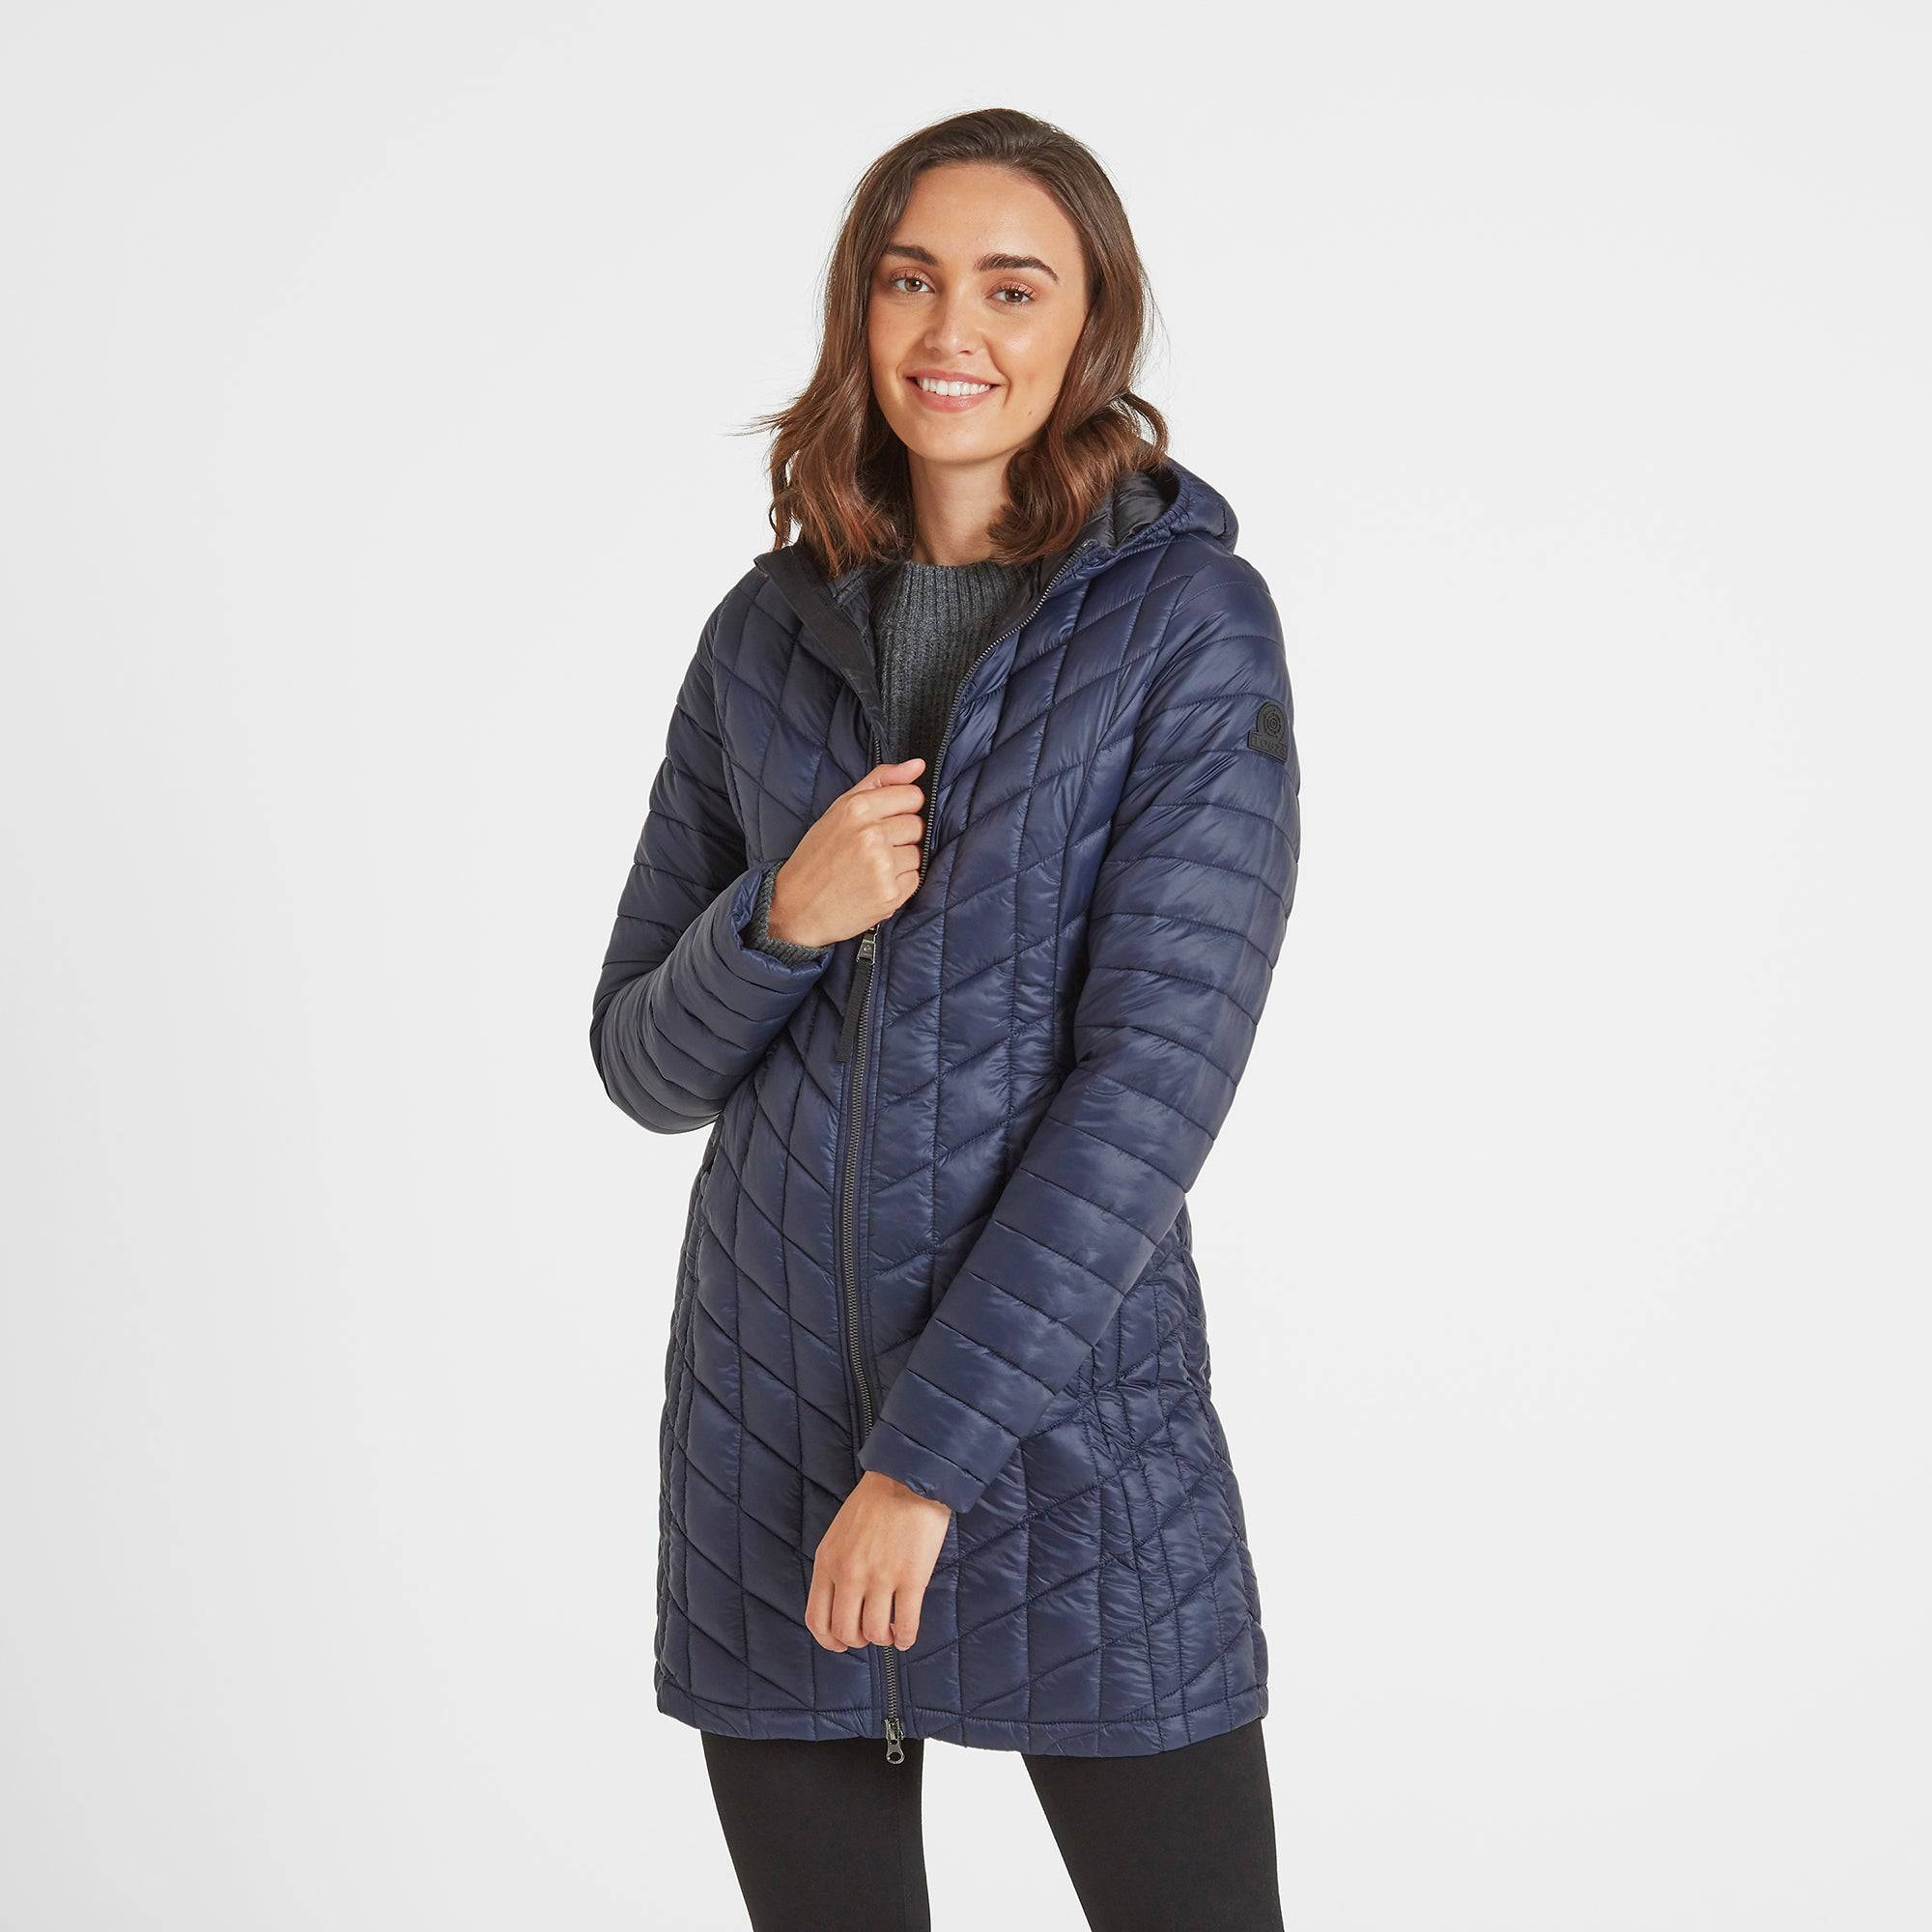 TOG24 Linton Womens Thermal Jacket - Navy - 10